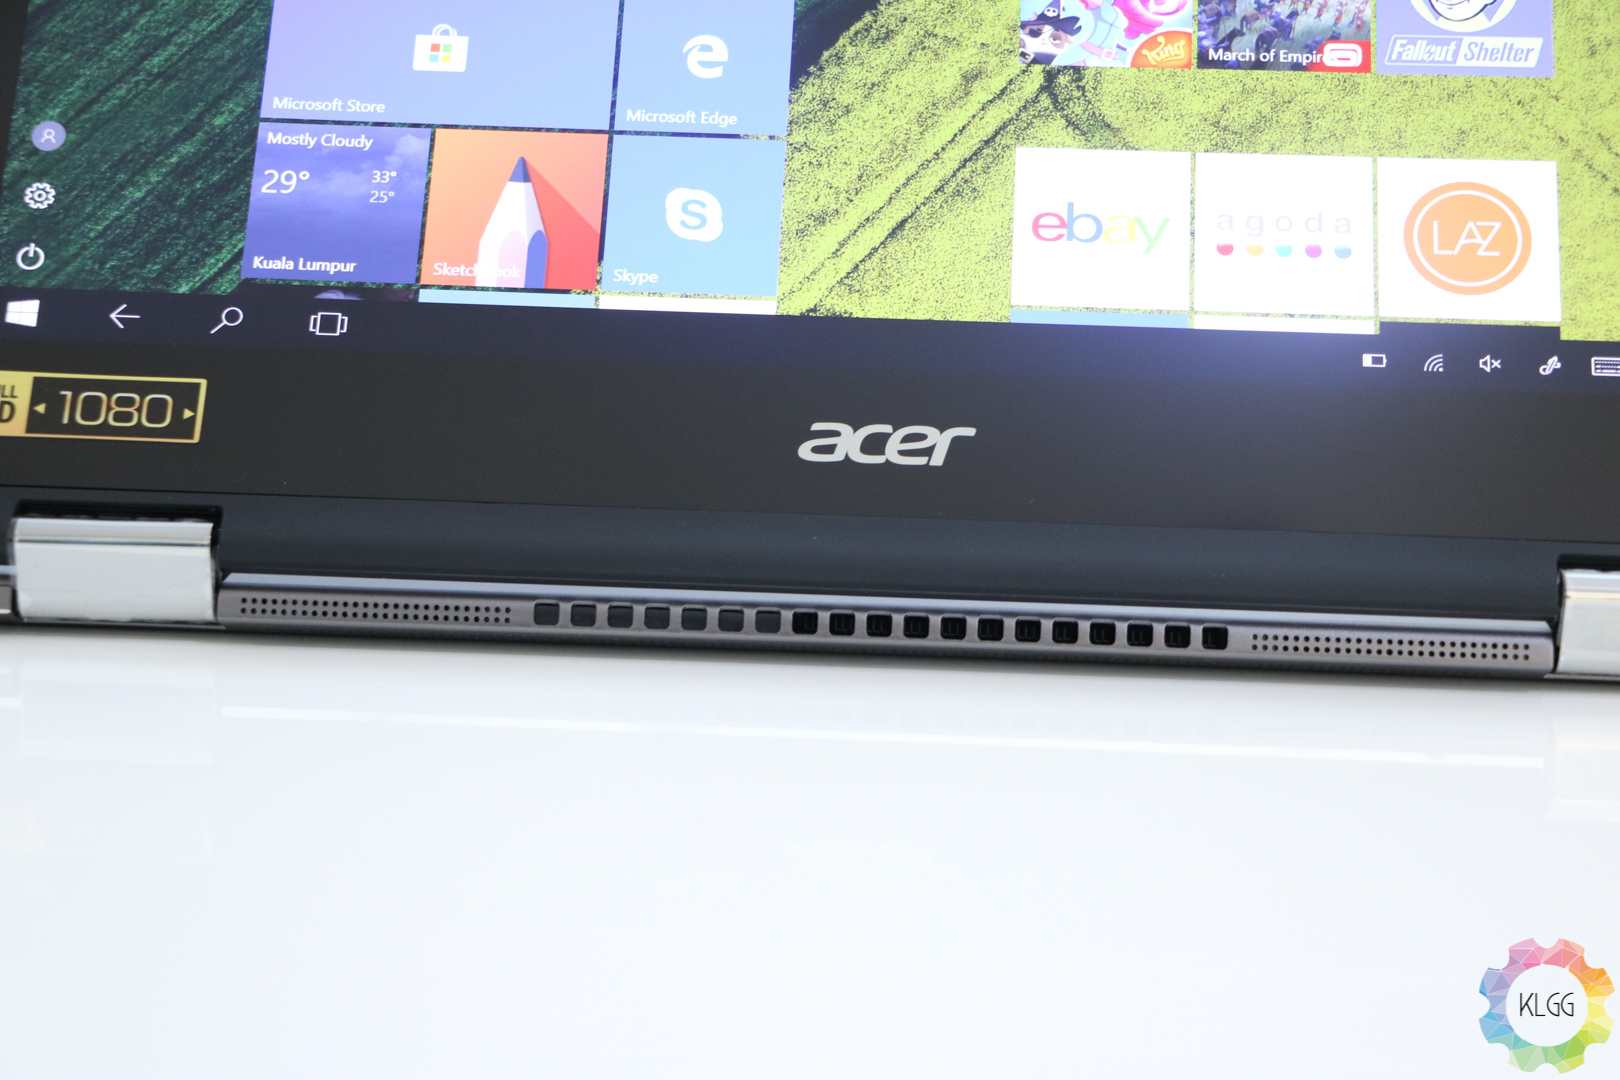 Acer Spin 5 Review: Decent Laptop With Some Issues To Iron Out 9